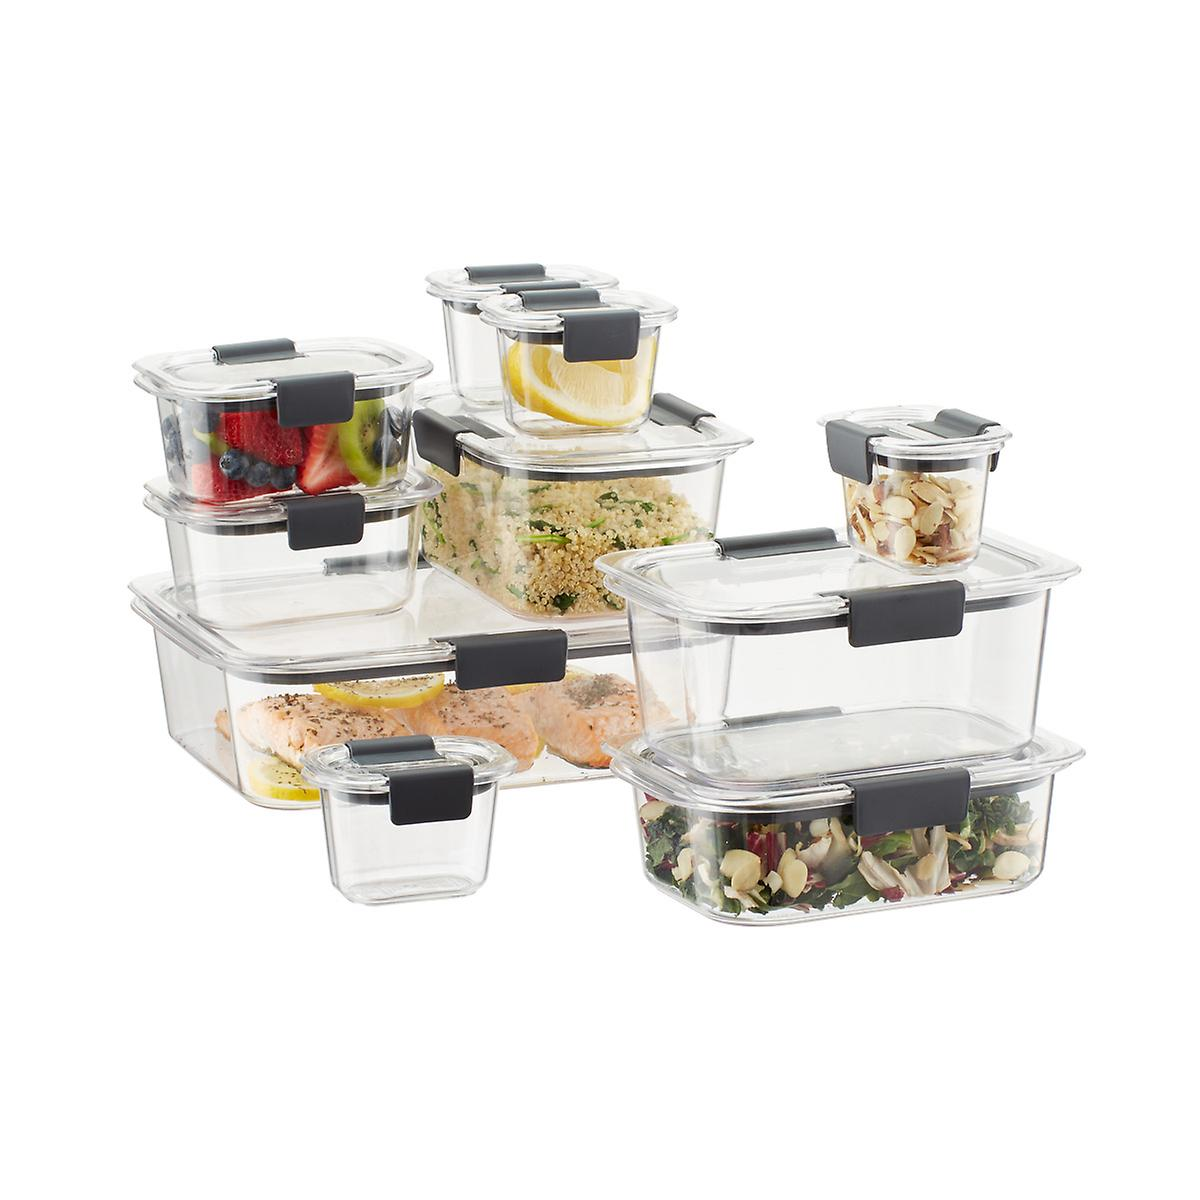 rubbermaid brilliance food storage containers set of 20. Black Bedroom Furniture Sets. Home Design Ideas